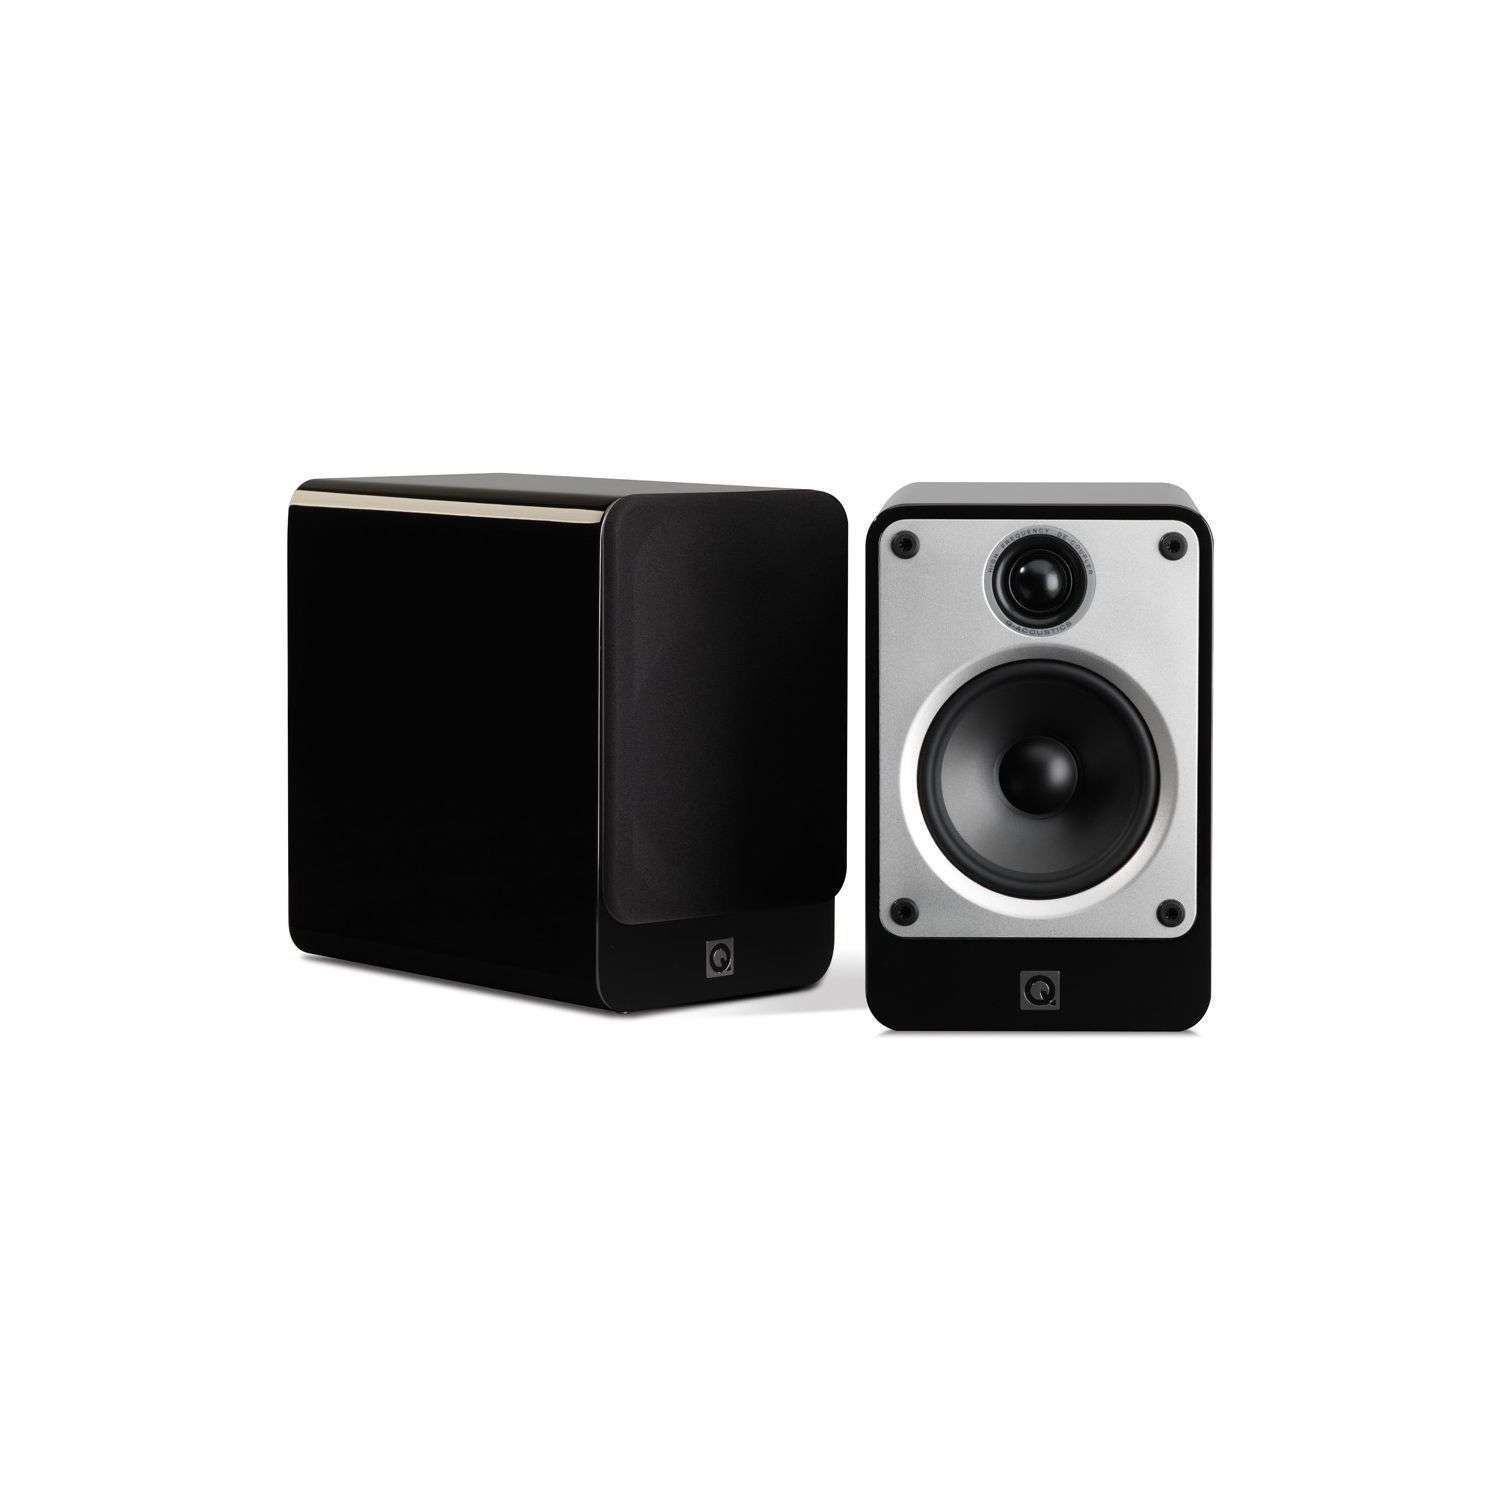 20 Concept Black Speakers Version with Feet